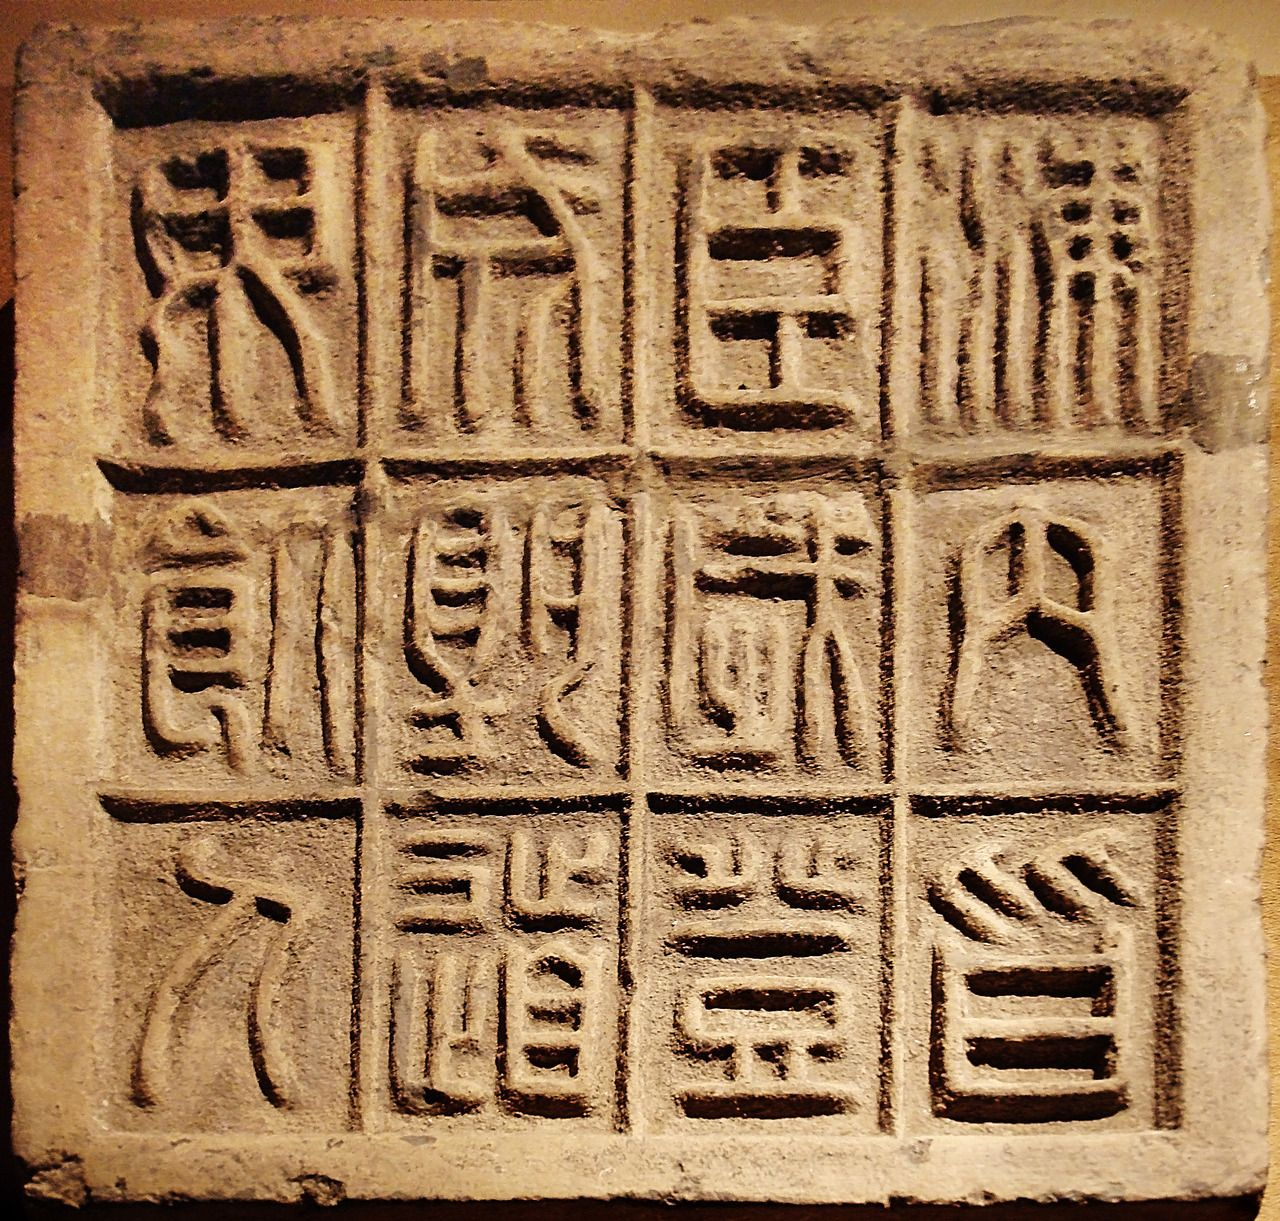 Ancient Chinese Stone slab with twelve small seal characters, Qin Dynasty (221 - 206 BC).  Photo taken by Editor at Large at the Treasures of Ancient China exhibit, Canadian Museum of Civilization.